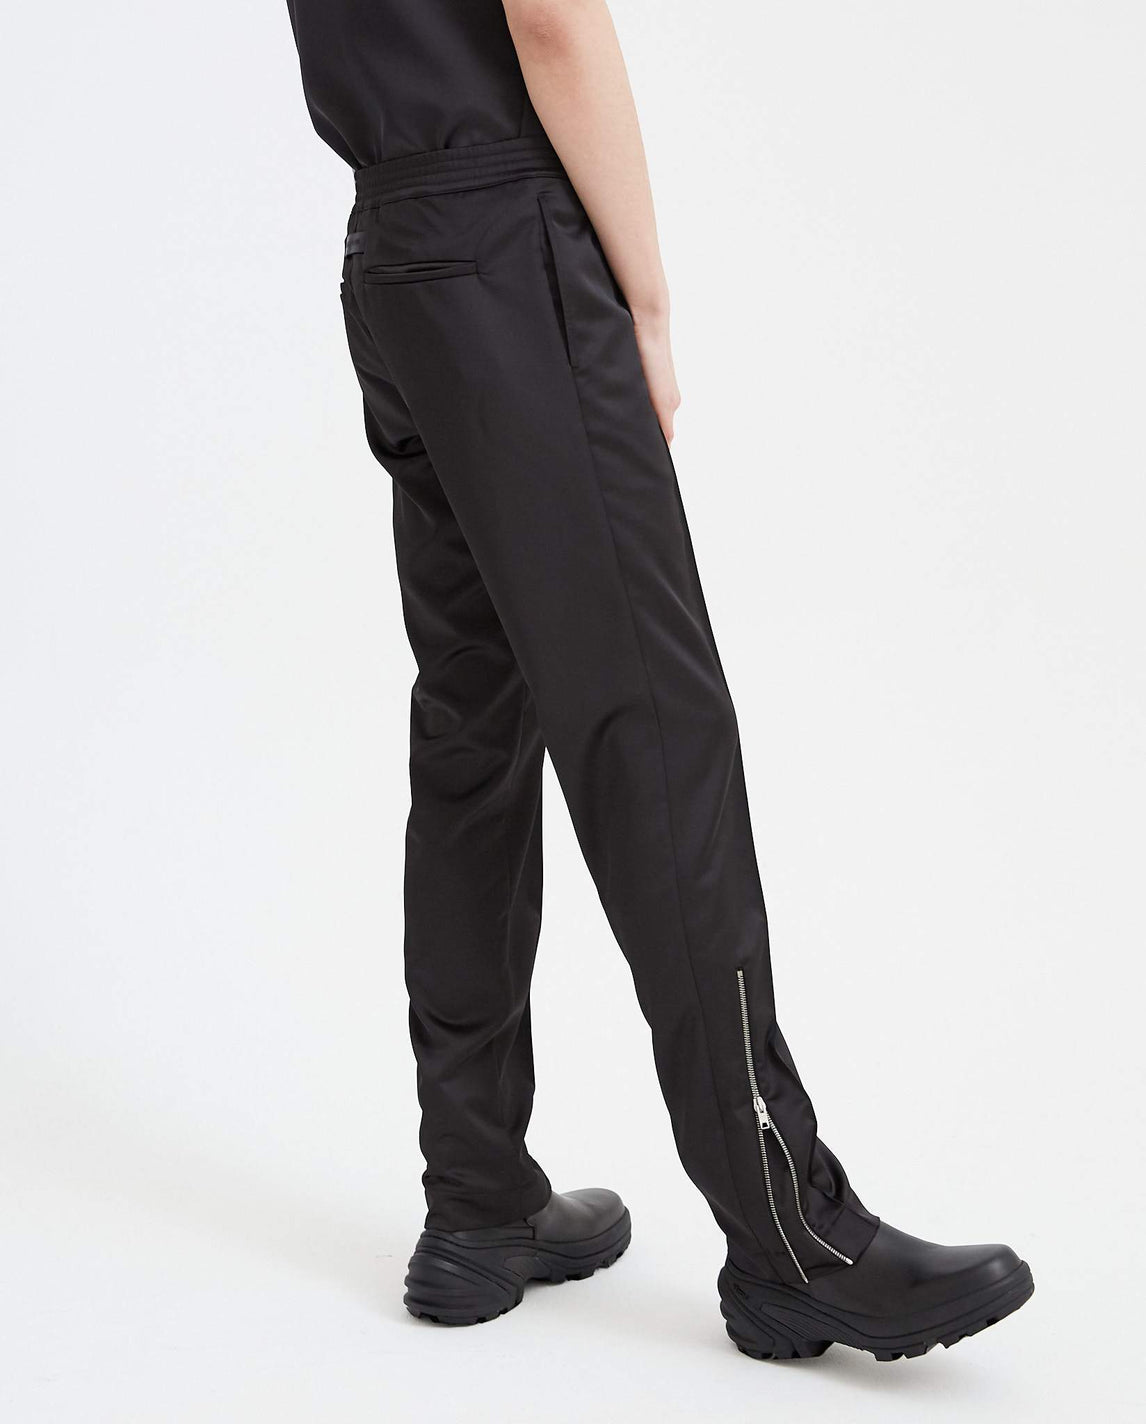 Evening Punk Pant - Black MENS 1017 ALYX 9SM